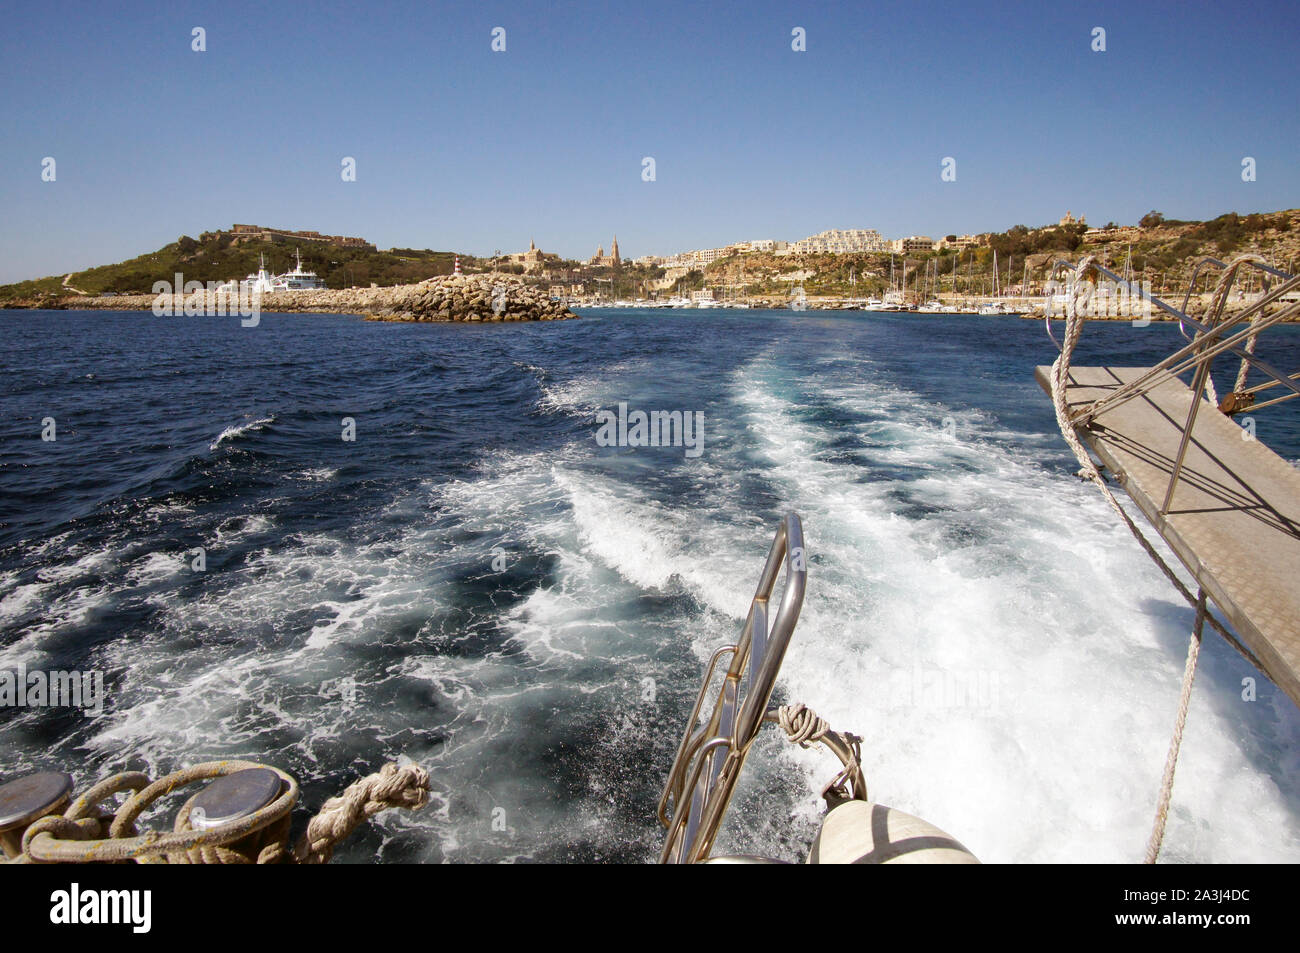 Landscape of Mgarr Harbor in Gozo, Malta visible from yacht deck Stock Photo